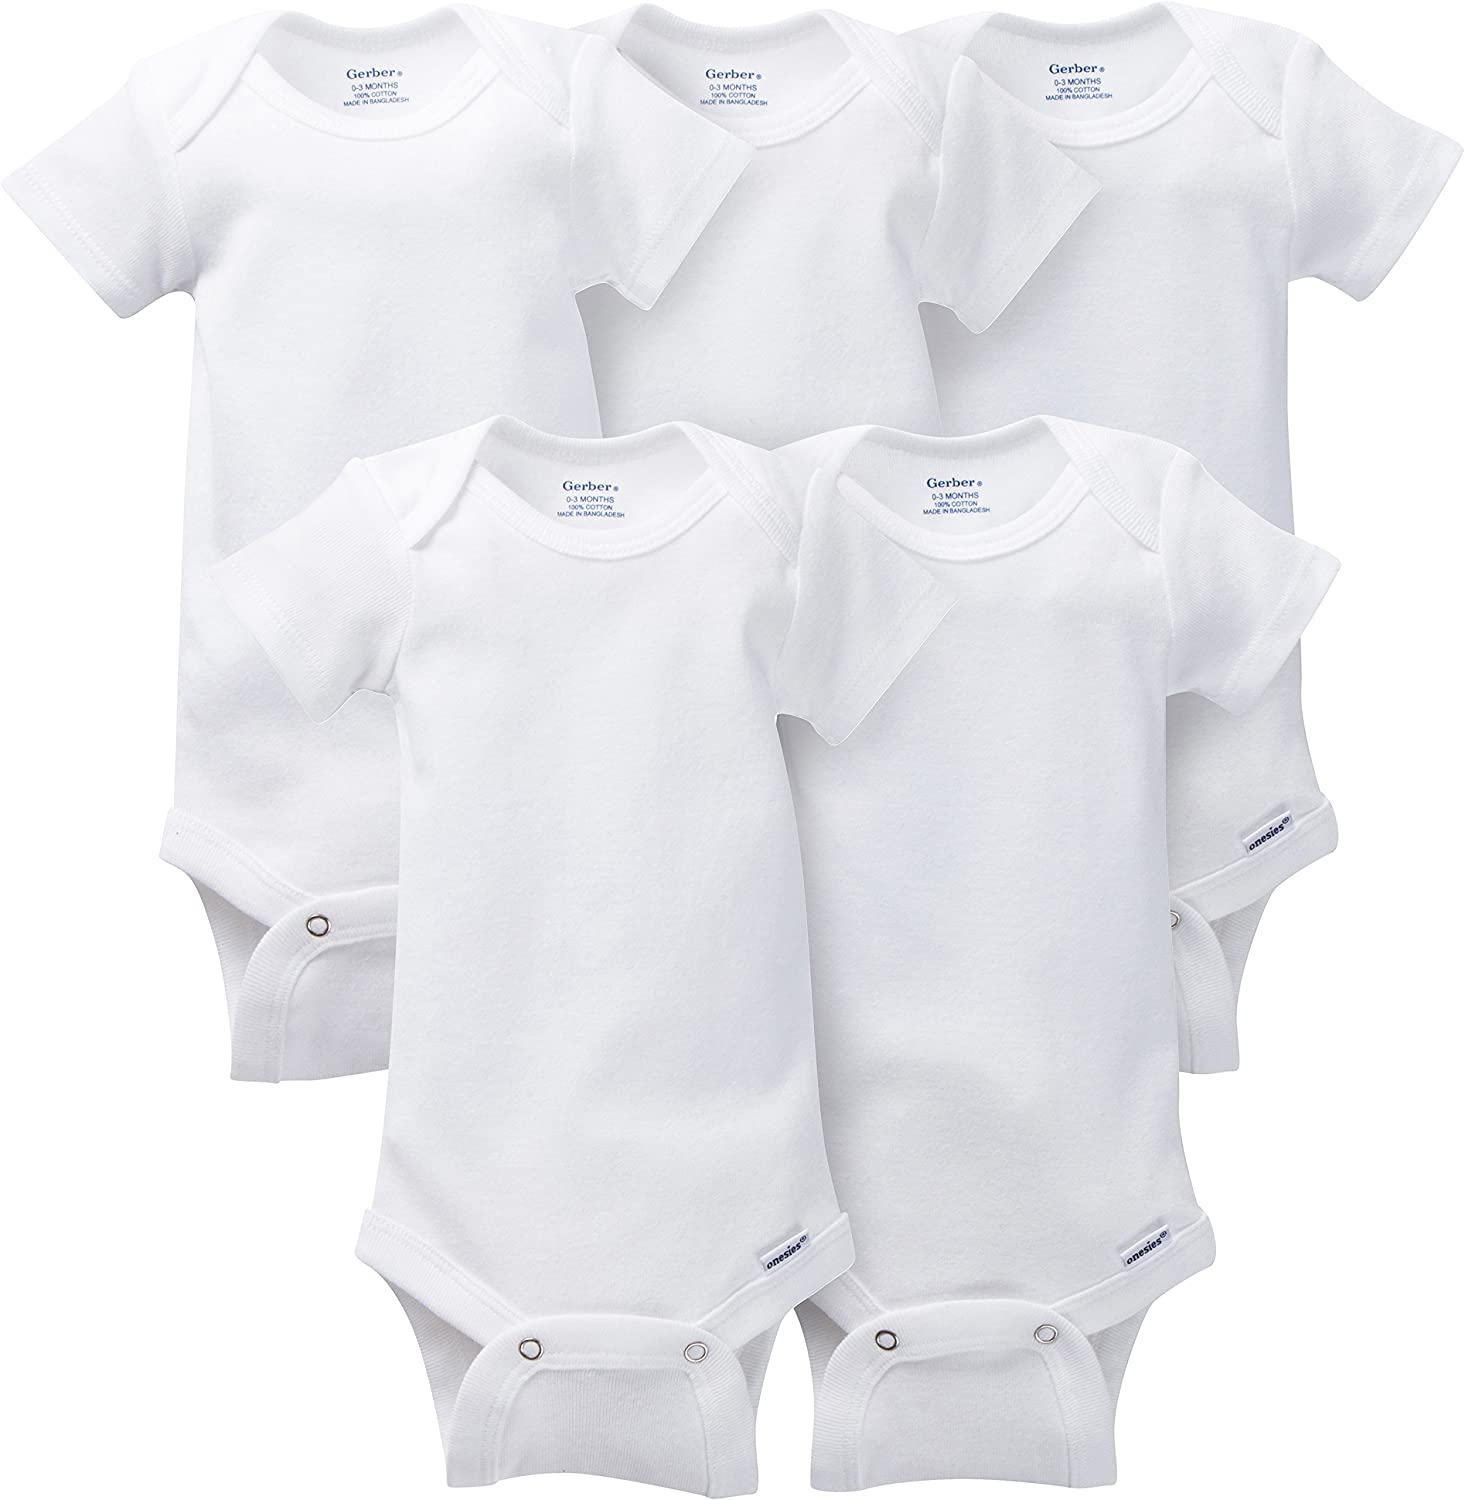 Gerber Baby 5-Pack Solid Onesies Bodysuits, White, Newborn WHT: Infant And Toddler Bodysuits: Clothing